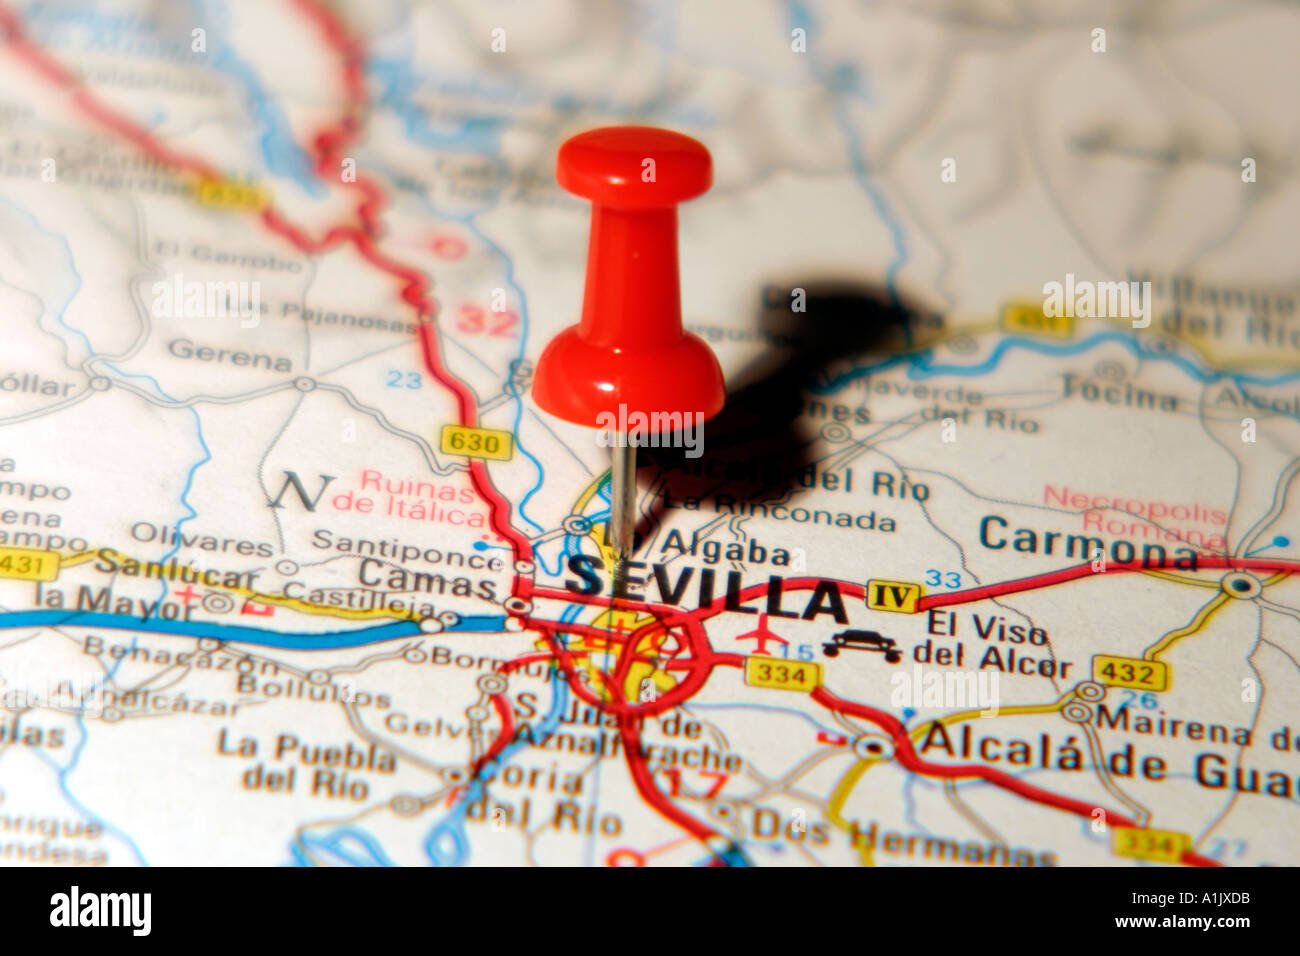 Map Of Spain Showing Seville.Map Pin Pointing To Seville Spain On A Road Map Stock Photo 3355354